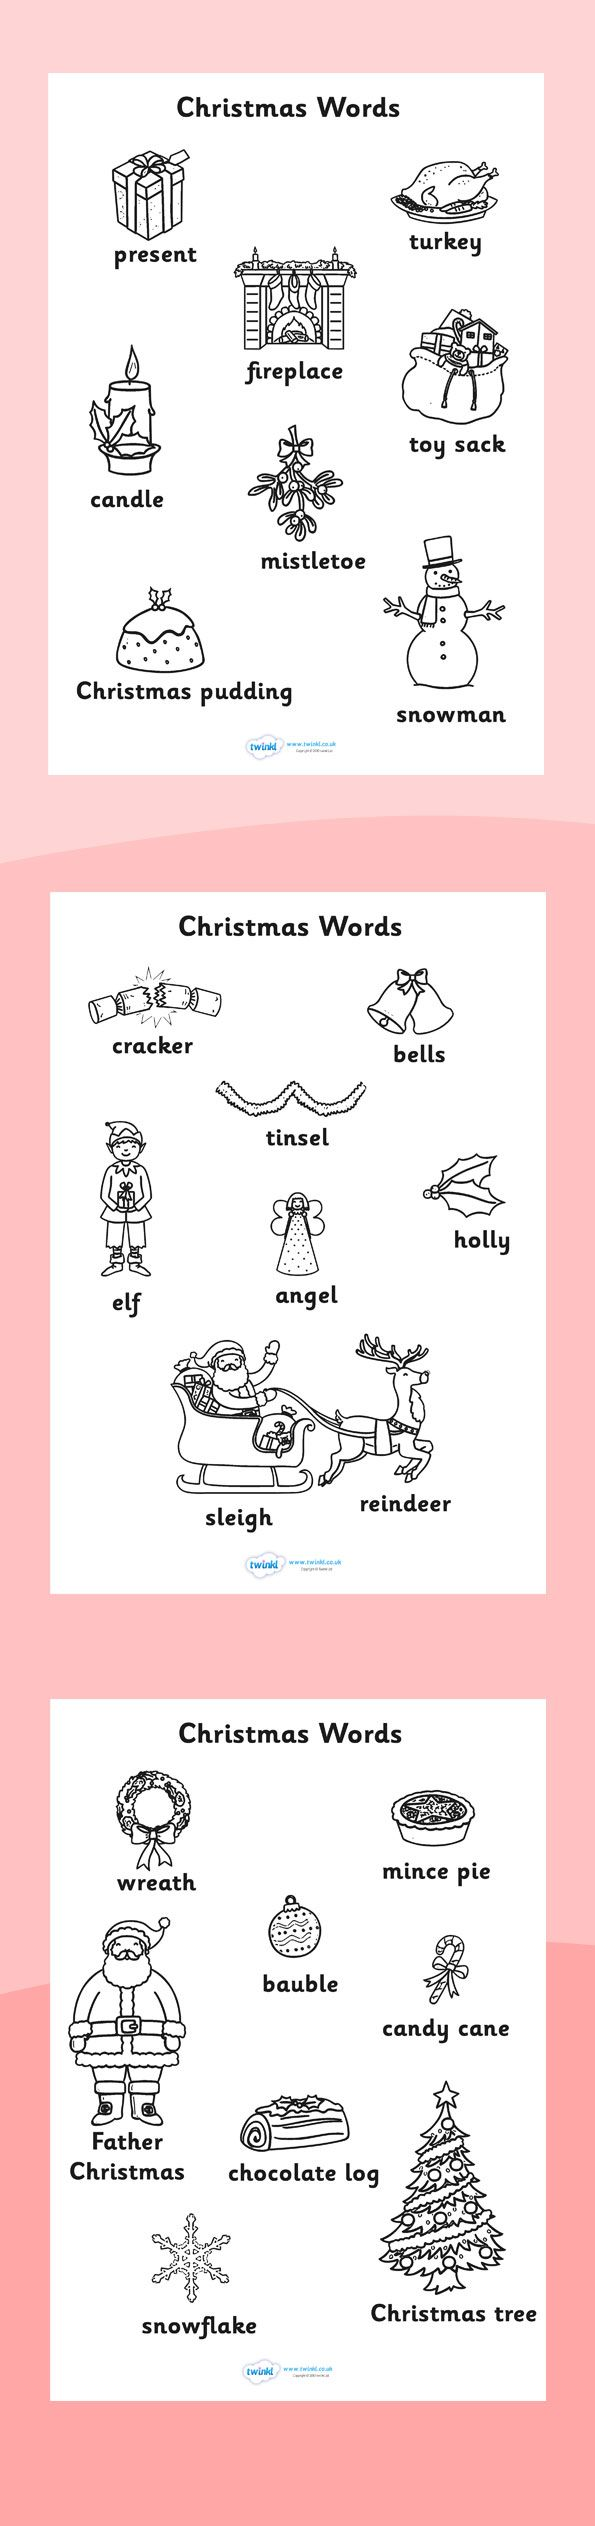 Twinkl Resources Christmas Words Colouring Sheets Printable Resources For Primar Christmas Words Christmas Coloring Books Classroom Christmas Decorations